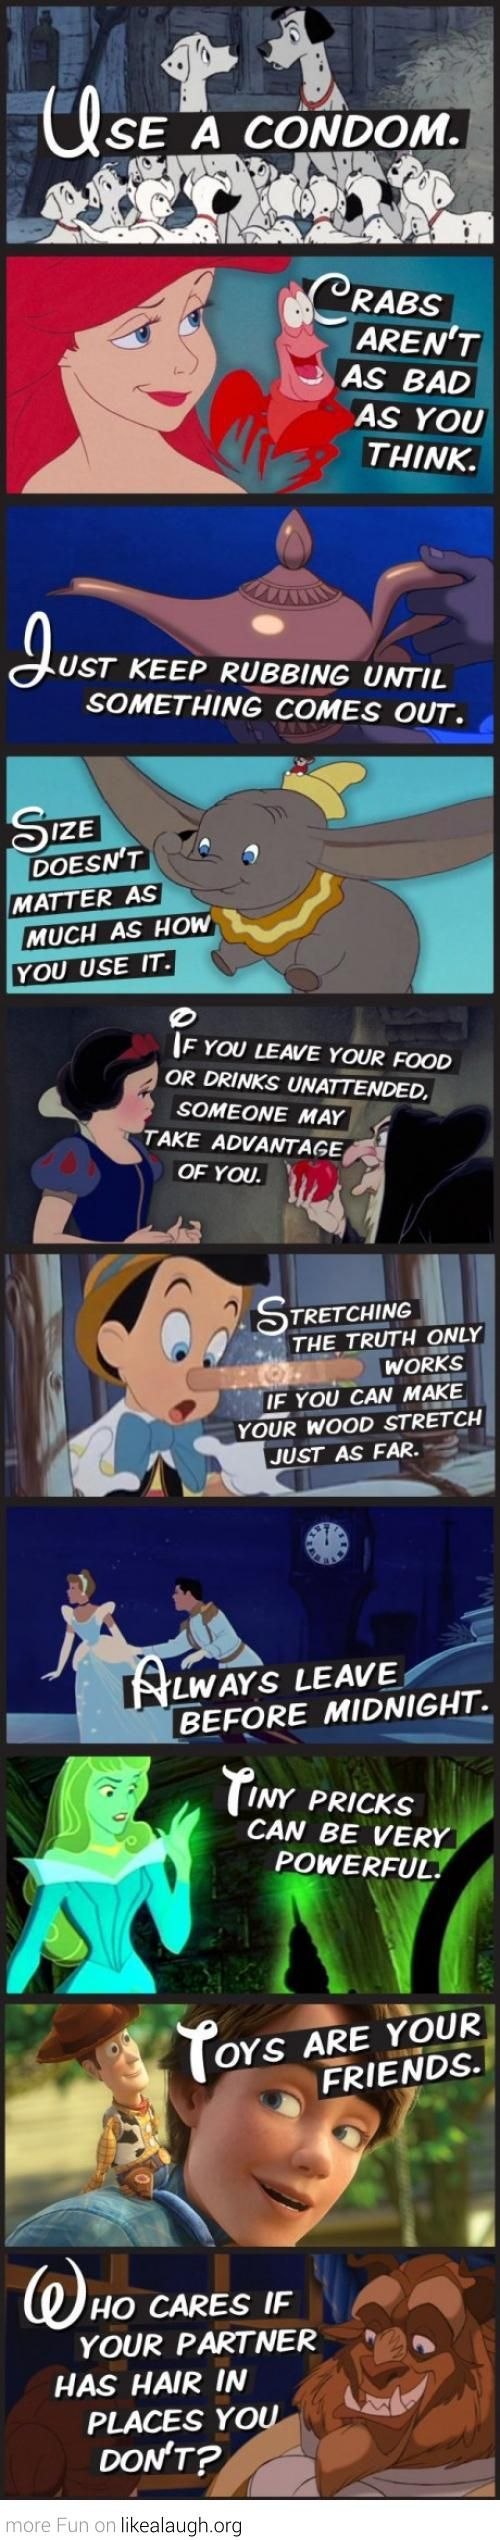 A few tips from Disney Movies..... Dying!!!!